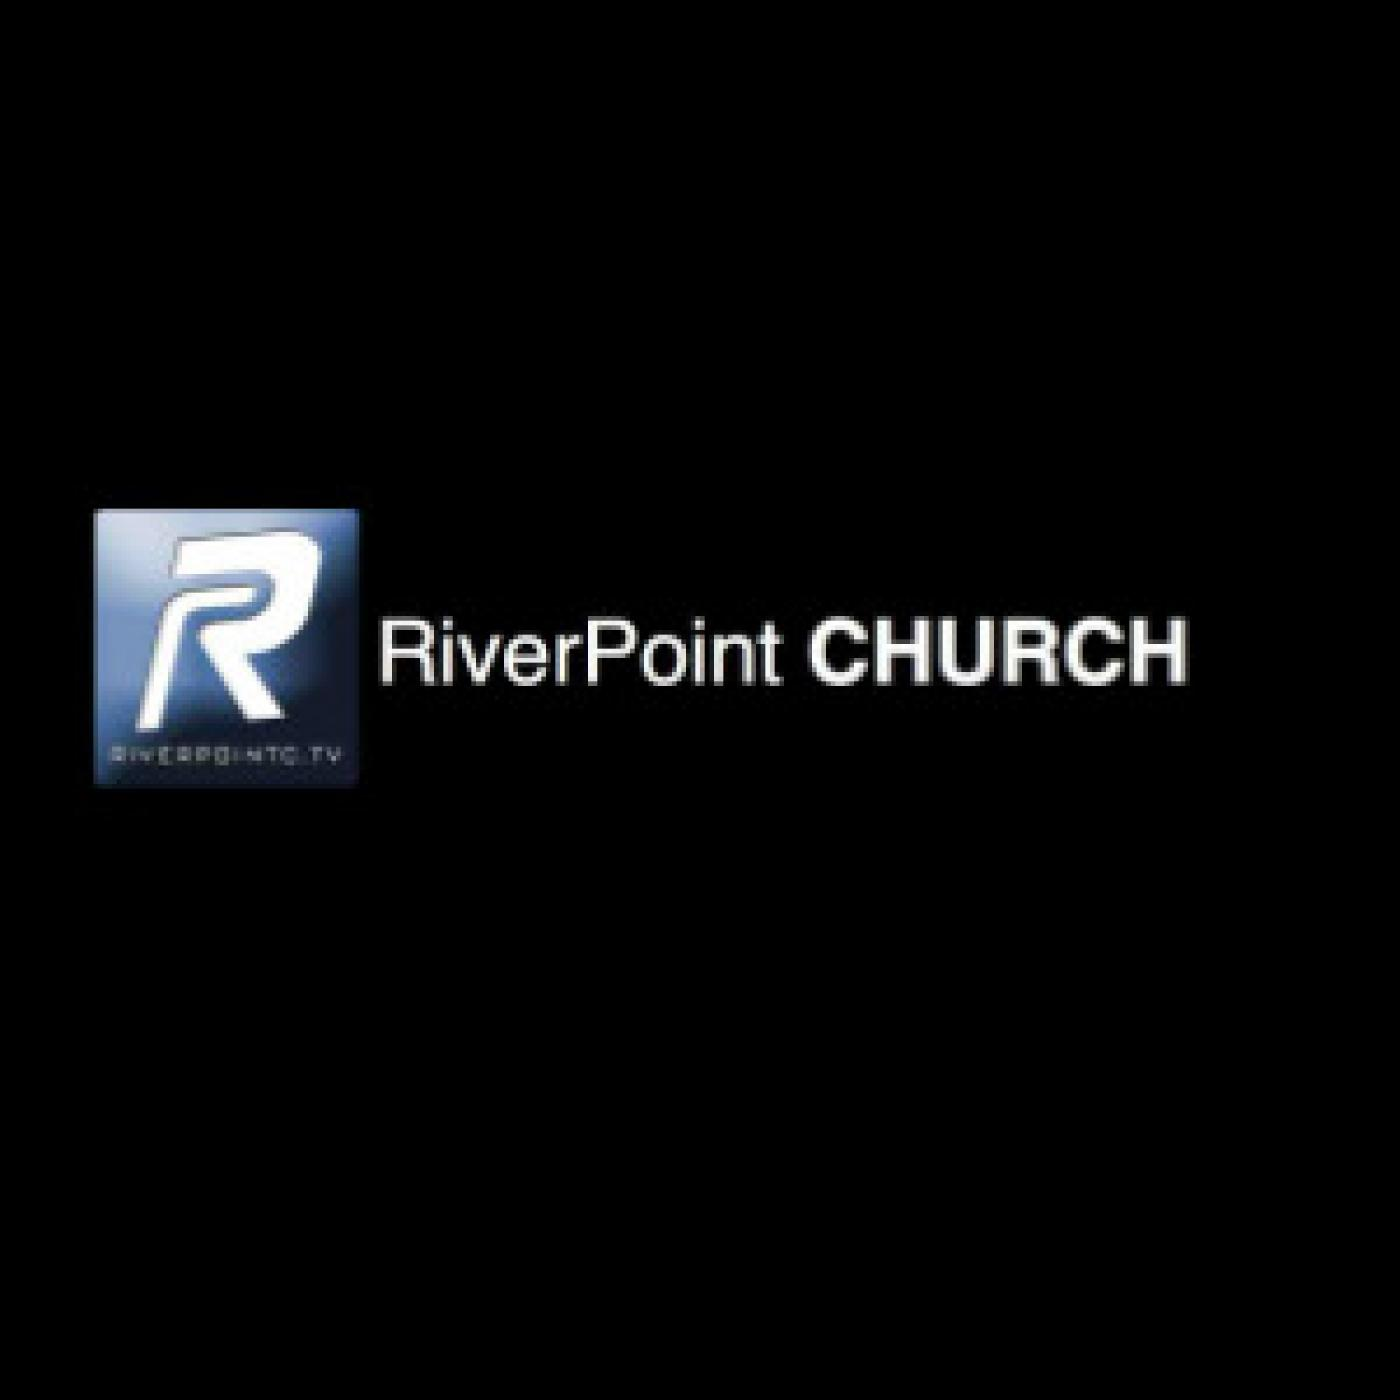 RiverPoint Church Audio Sermon & Worship